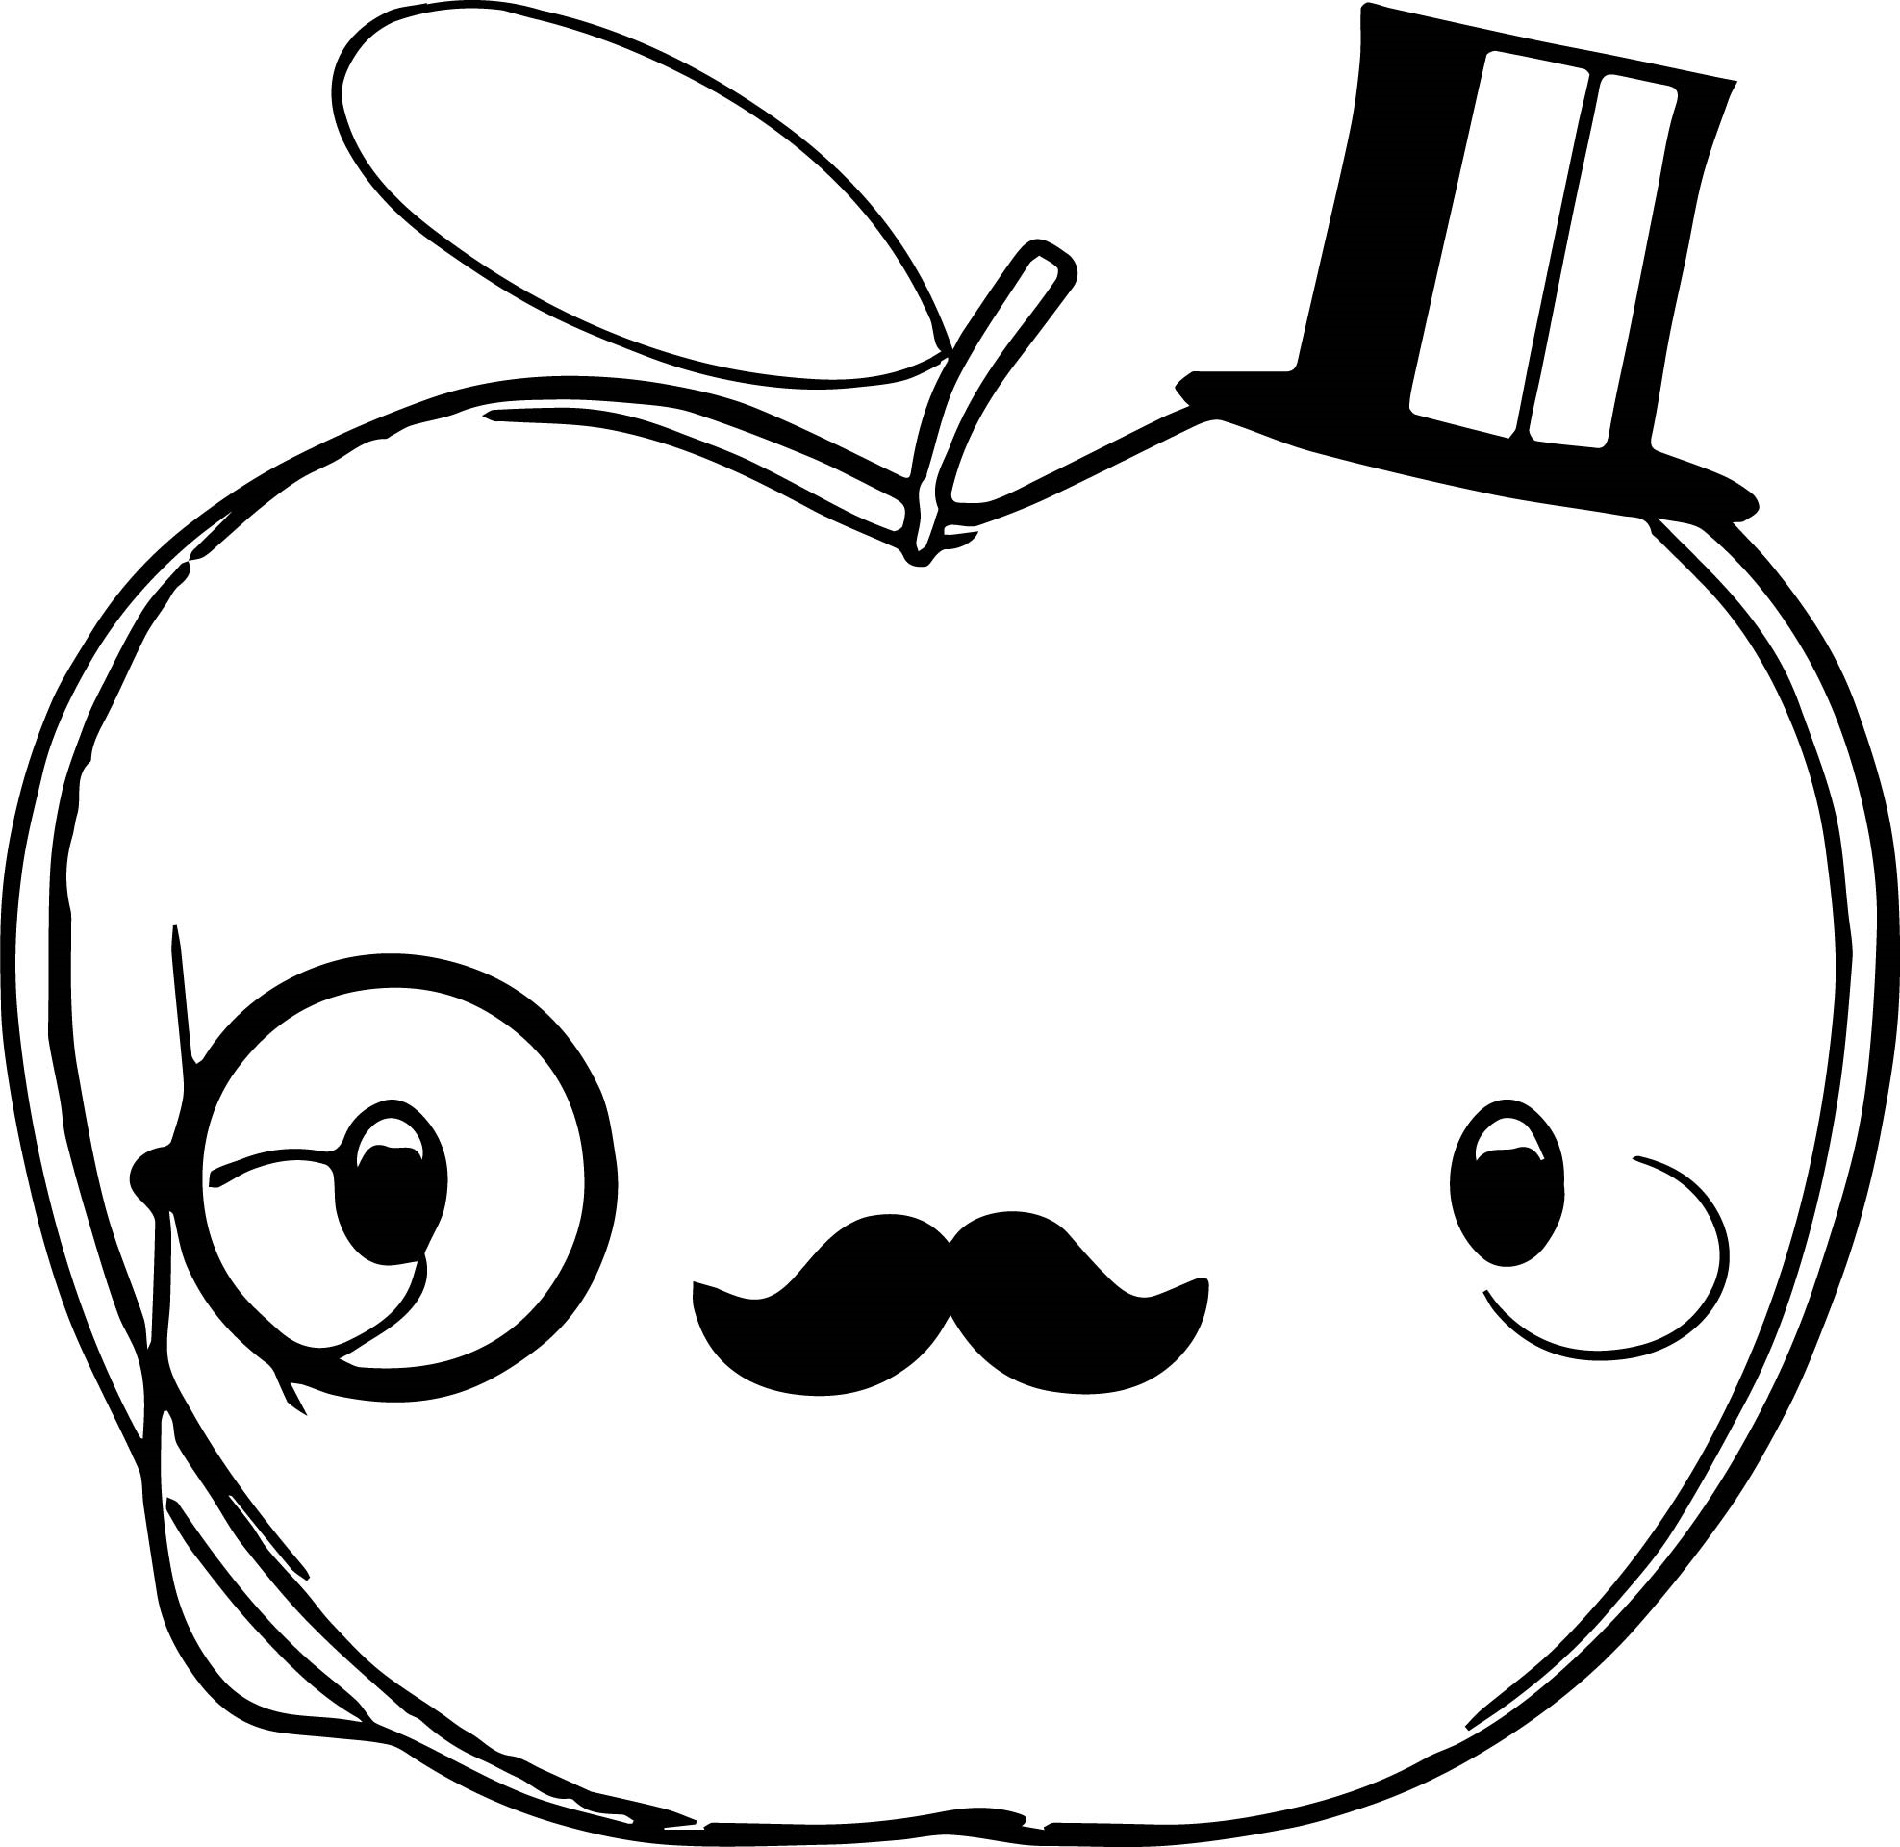 coloring page of an apple apple coloring pages fotolipcom rich image and wallpaper coloring apple of page an